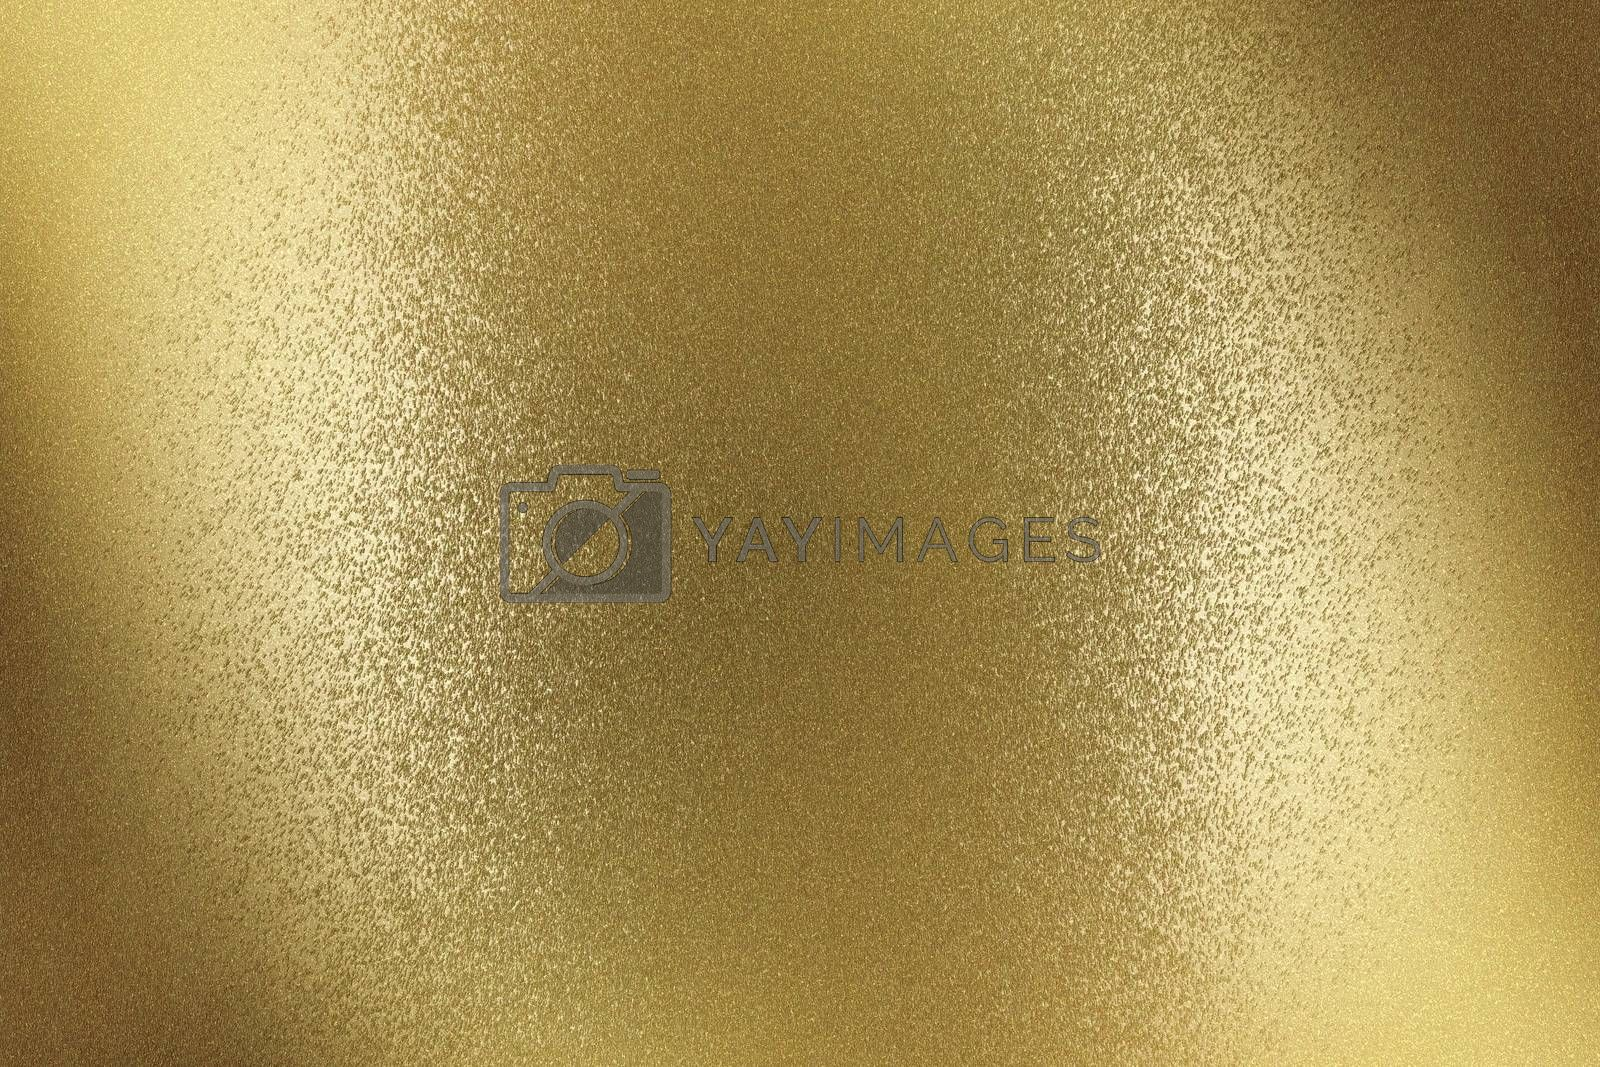 Glowing brushed bronze metal wall surface, abstract texture background by mouu007